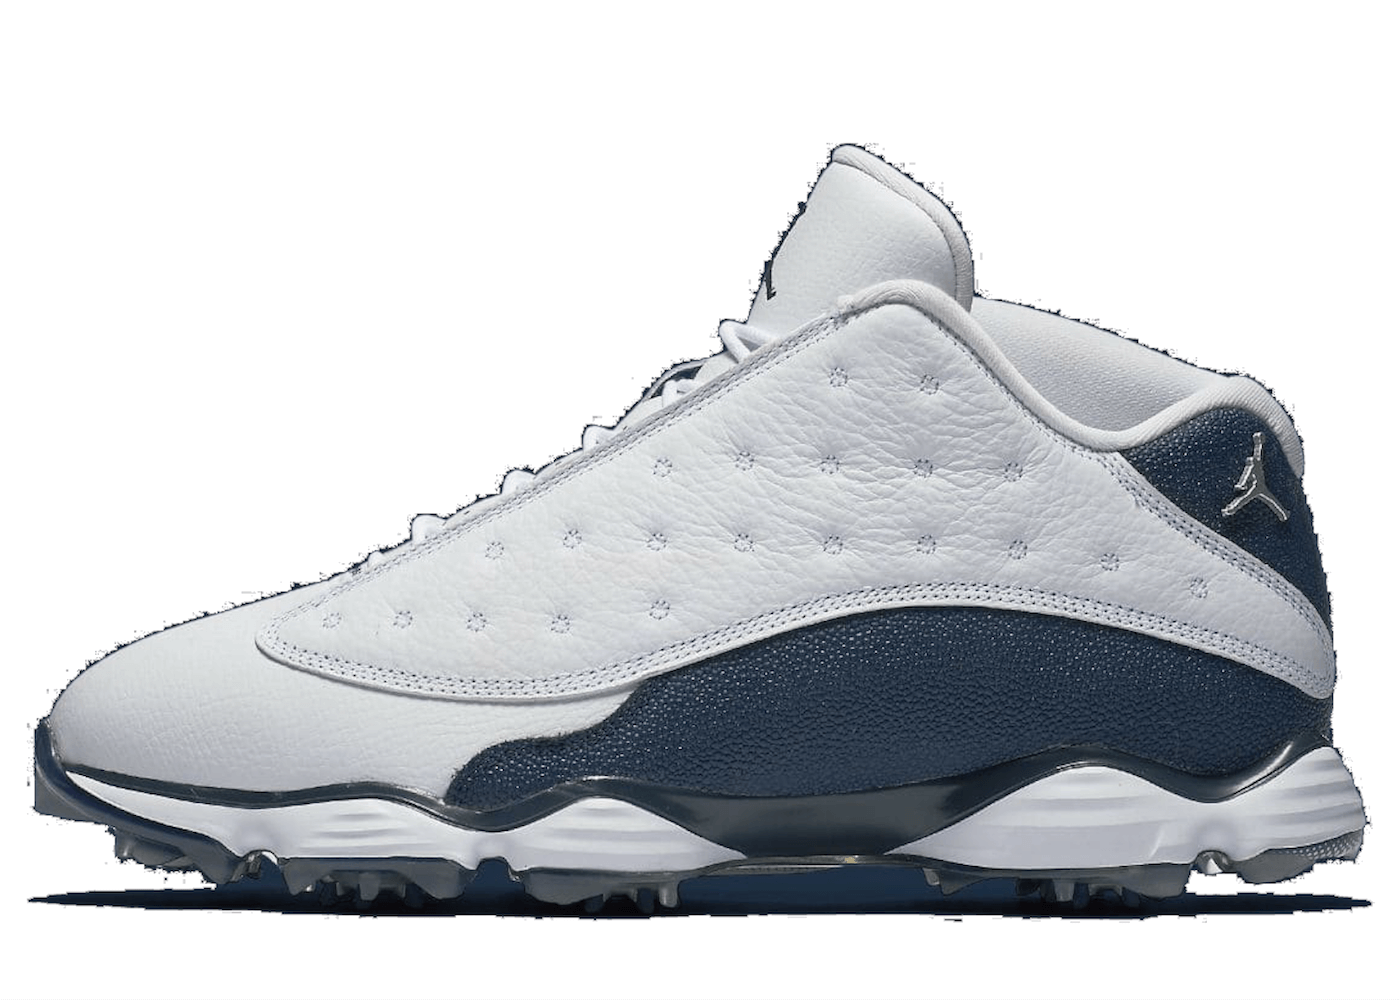 Jordan 13 Retro Golf White Navy Blueの写真